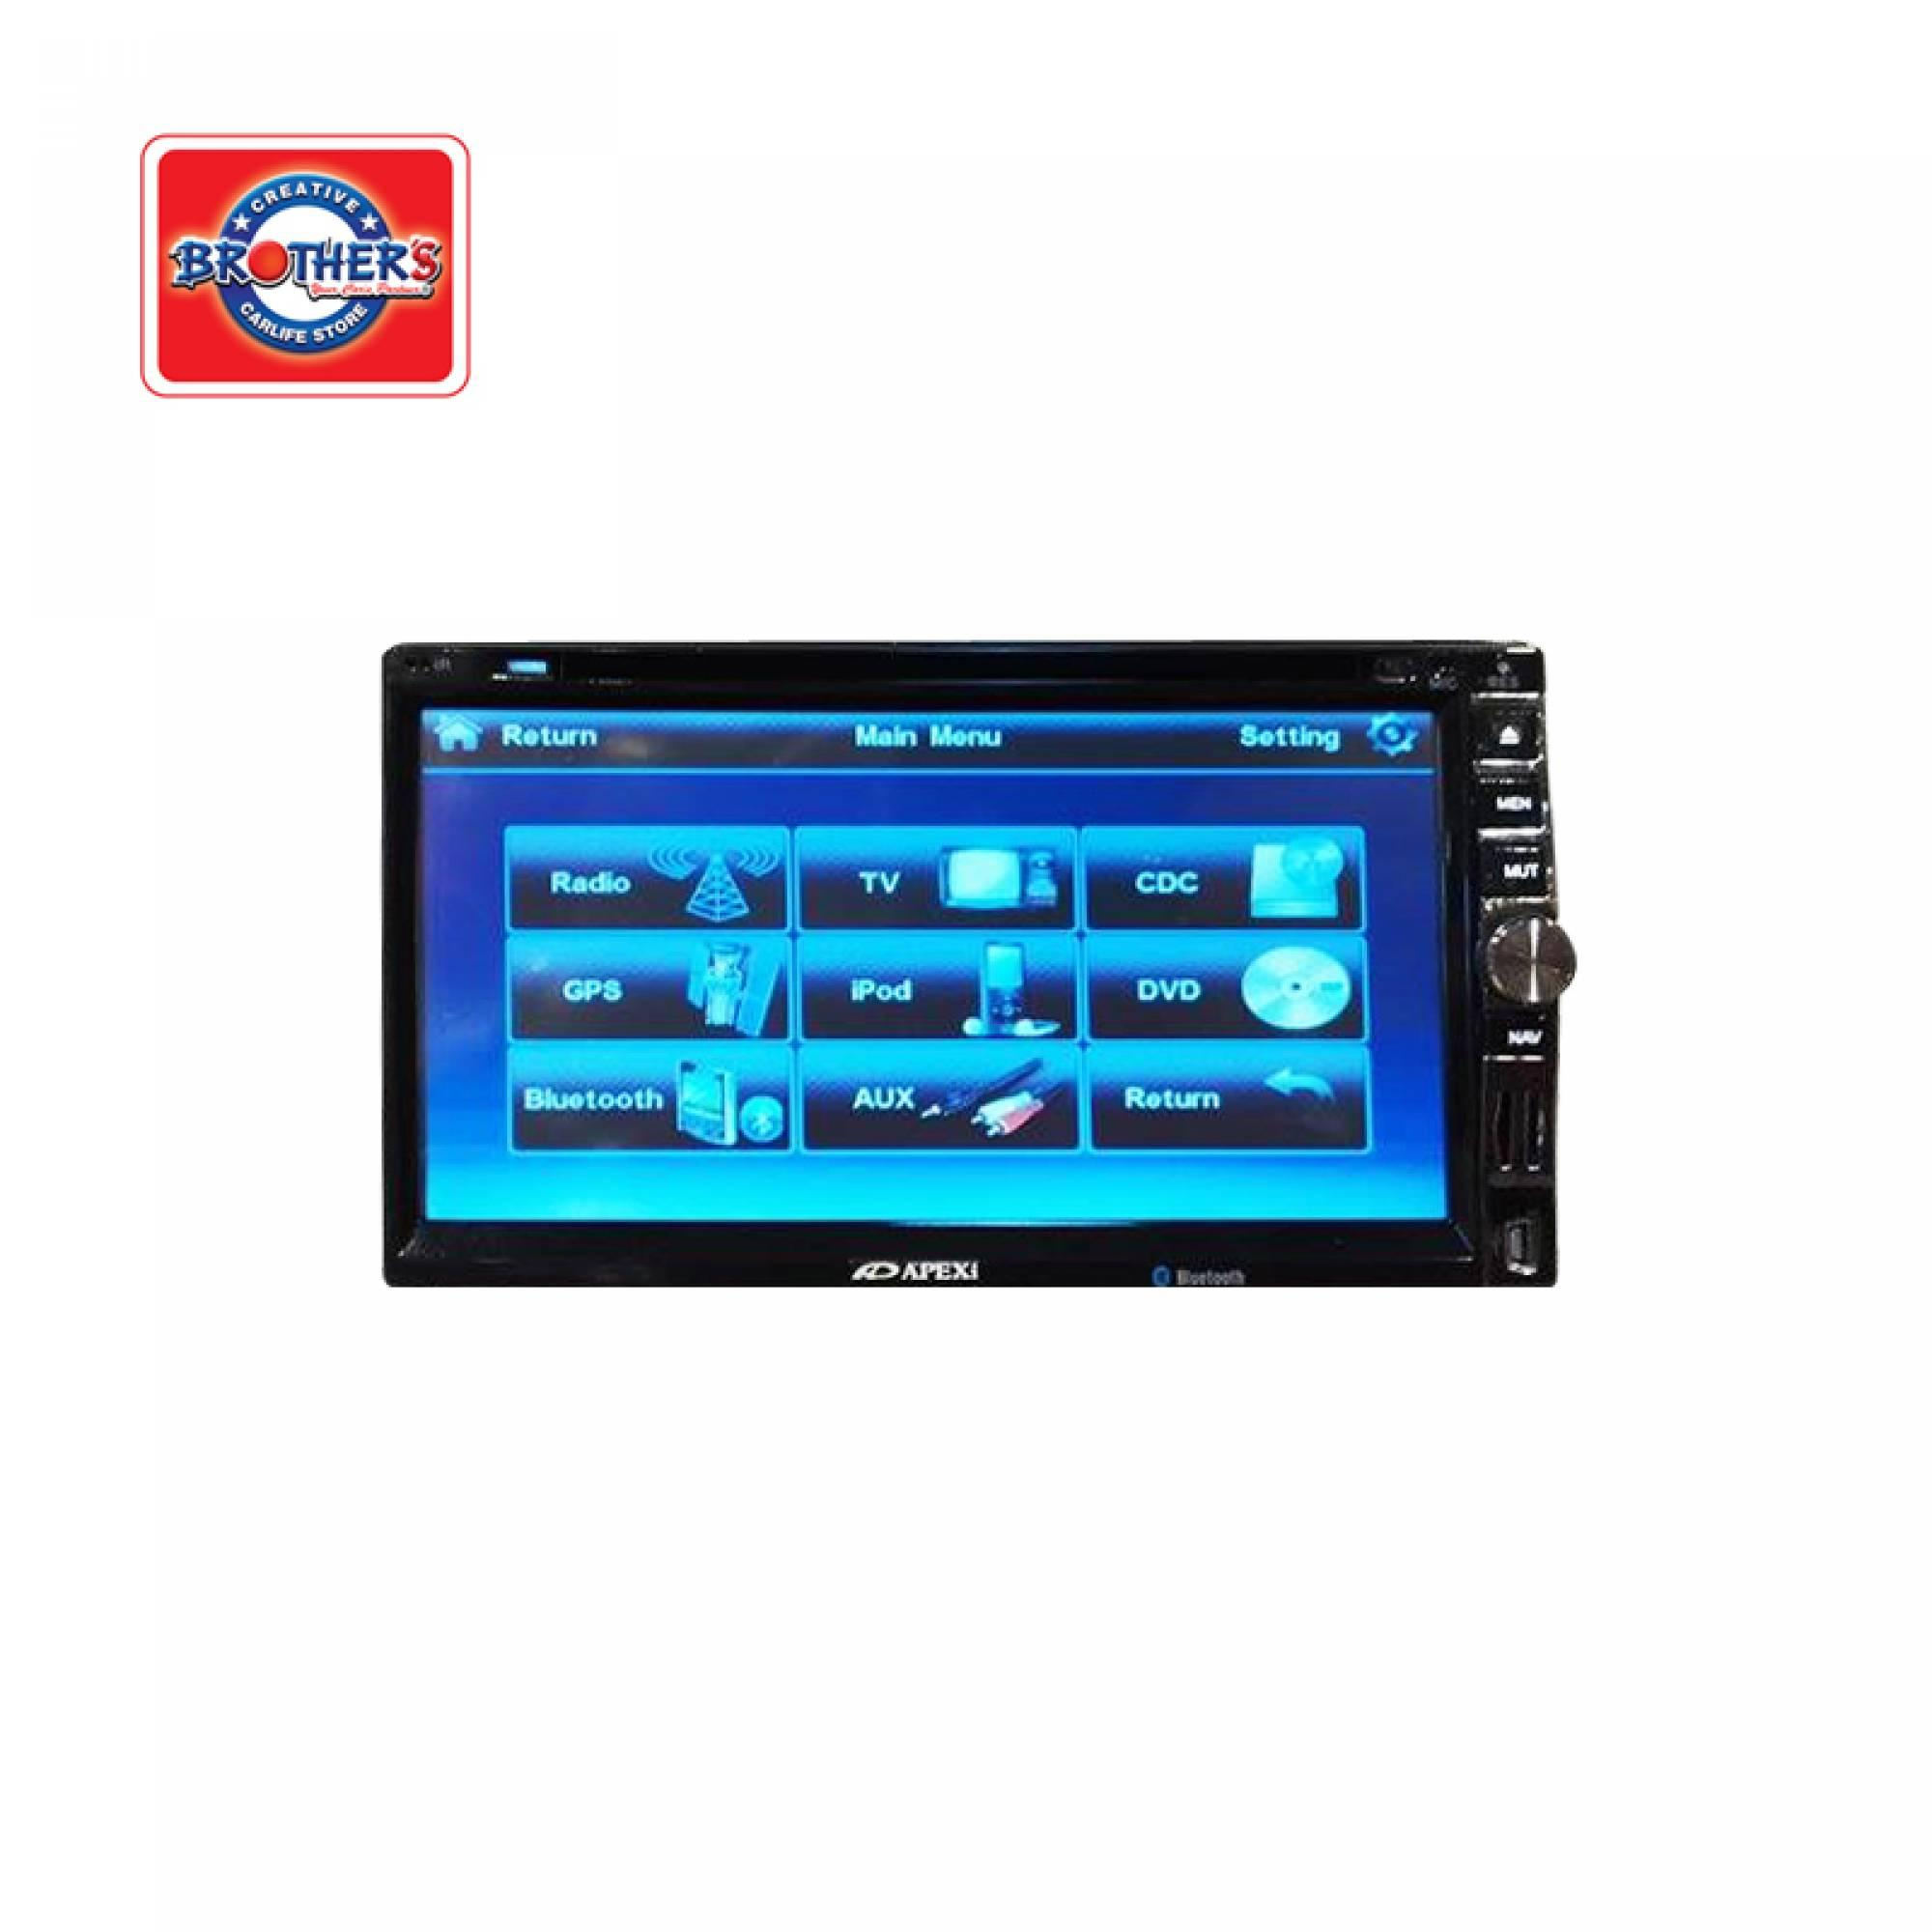 Apexi Apx6969 Double Din Player Brothers Factory Outlet M Sdn Turbo Timer Wiring Post Laju